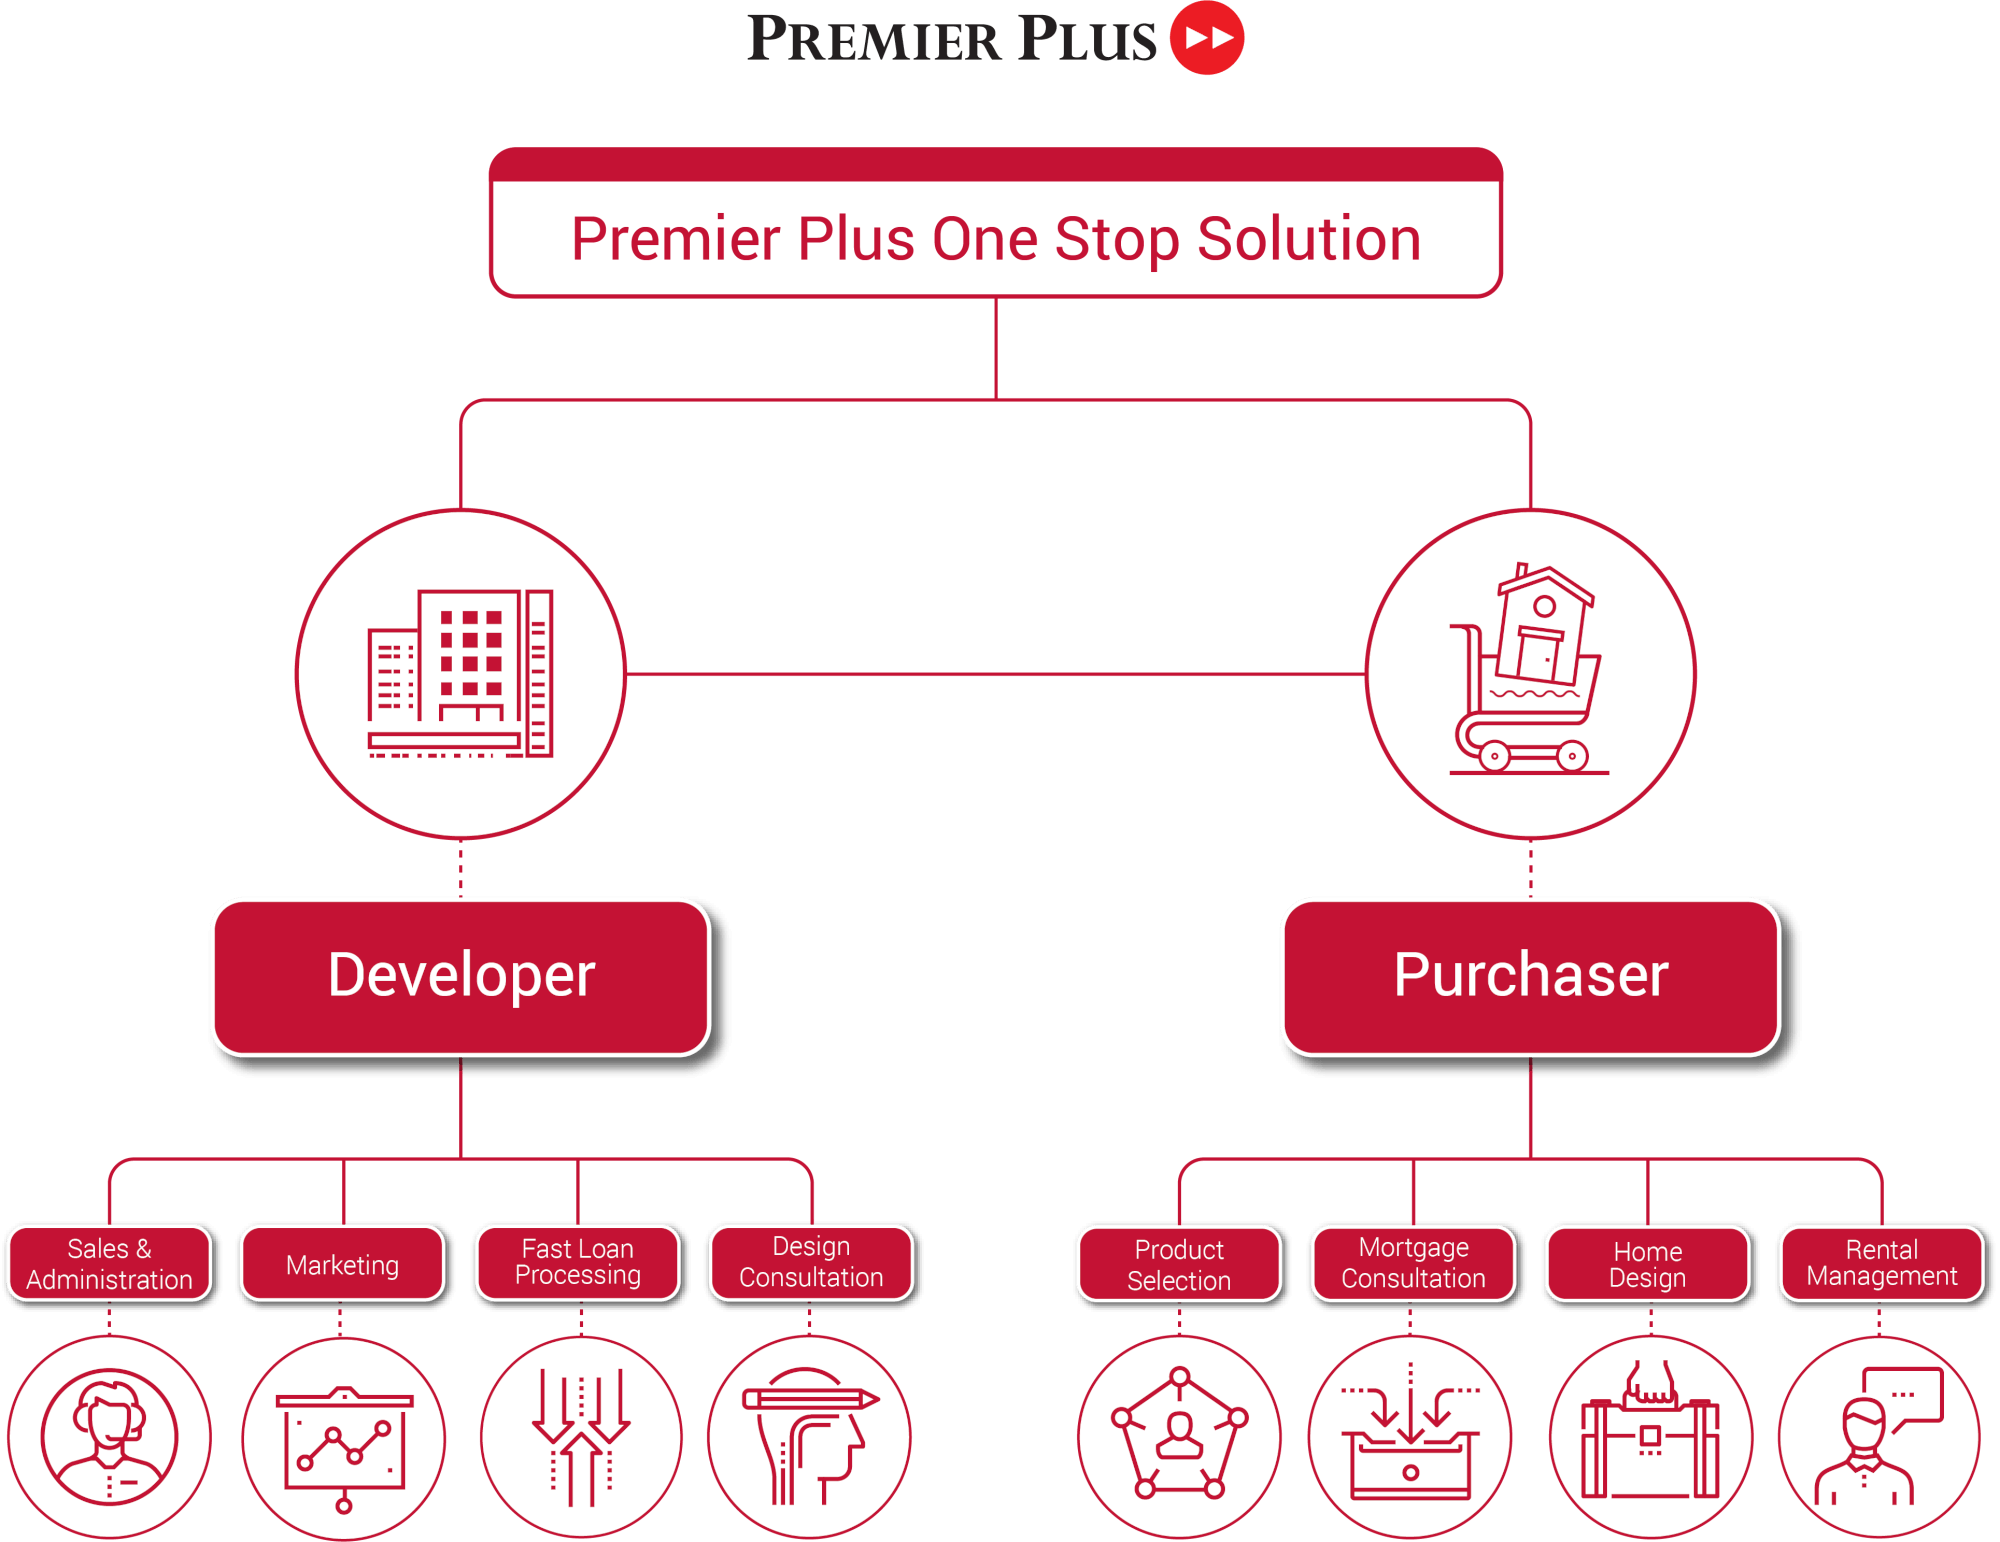 Premier Plus Property : Real estate one stop solution.